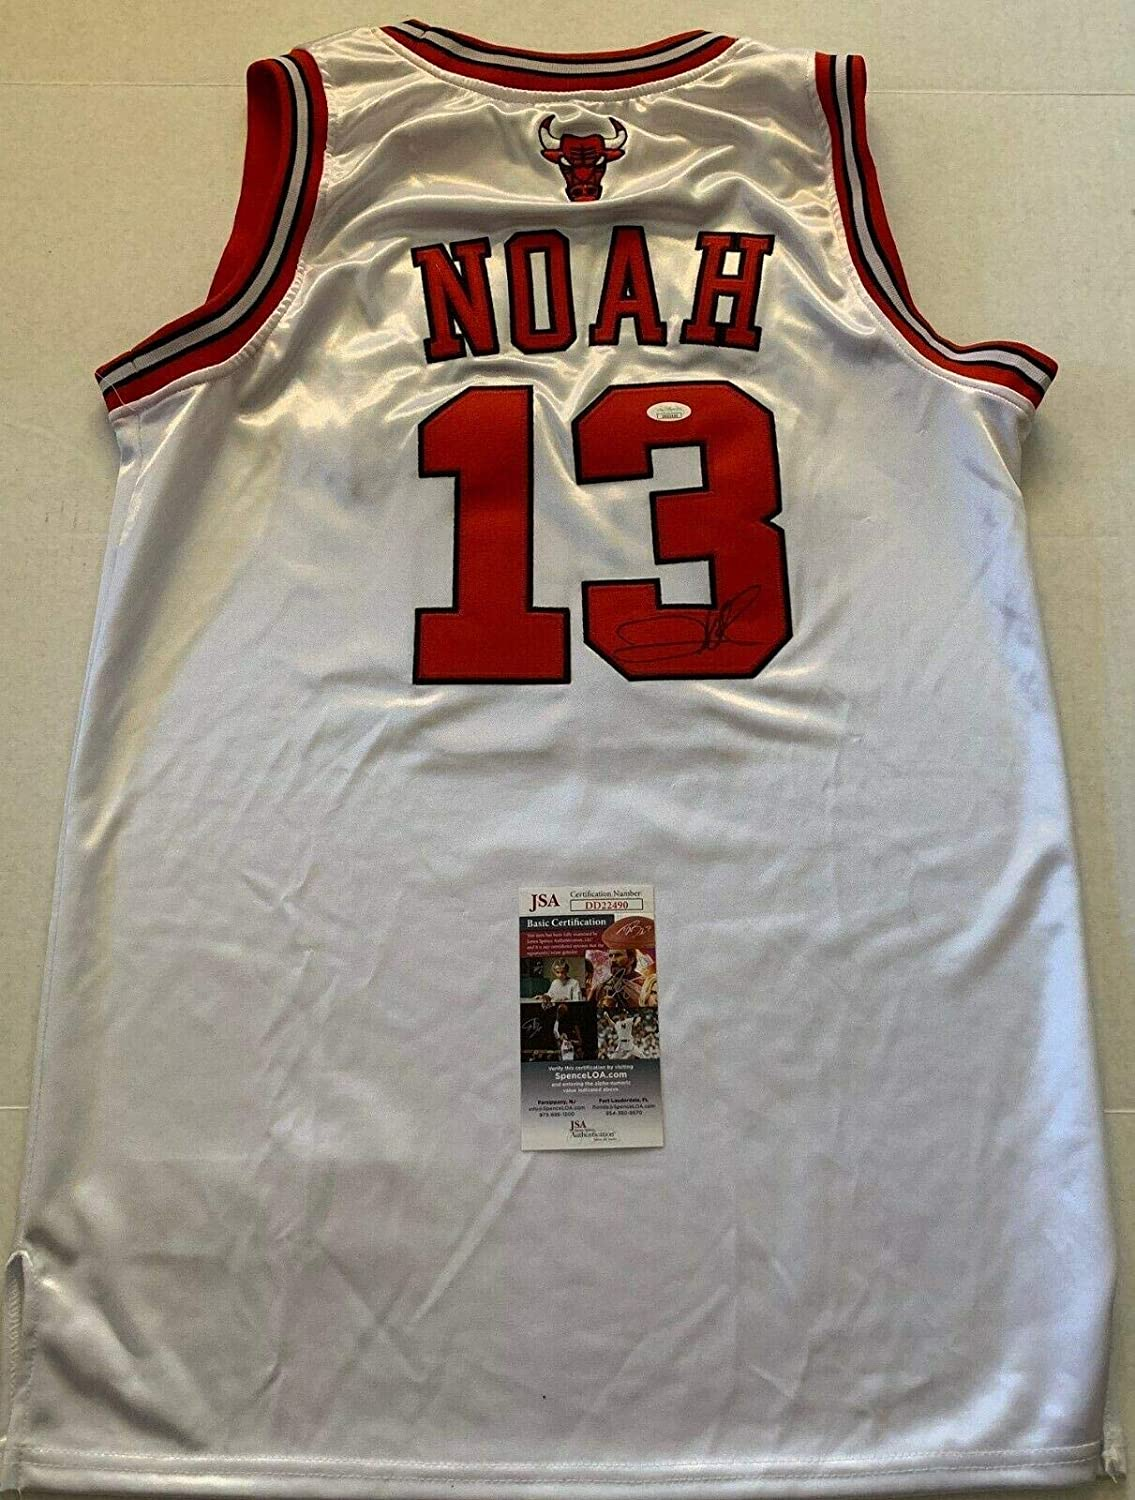 Used Chicago Bulls Jersey Joaquin Noah #13 for sale in